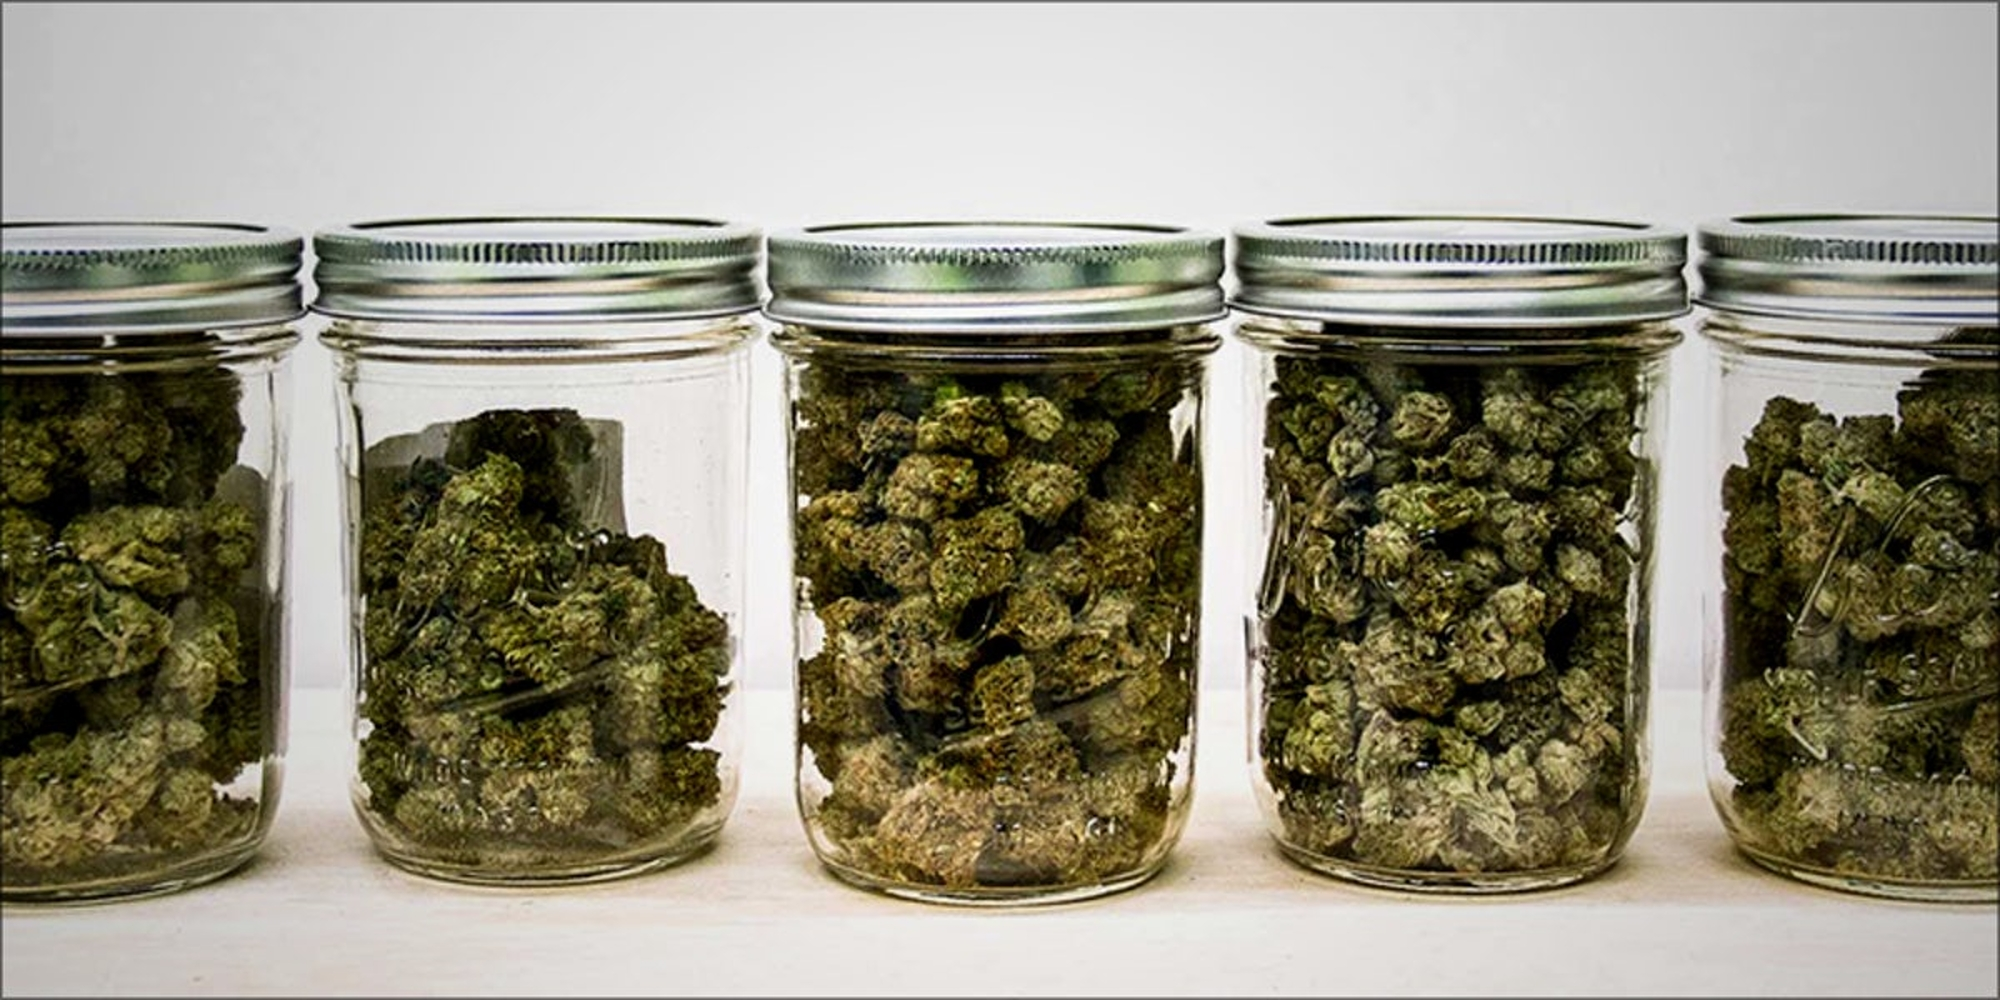 How Long Does Weed Stay Good? | Herb